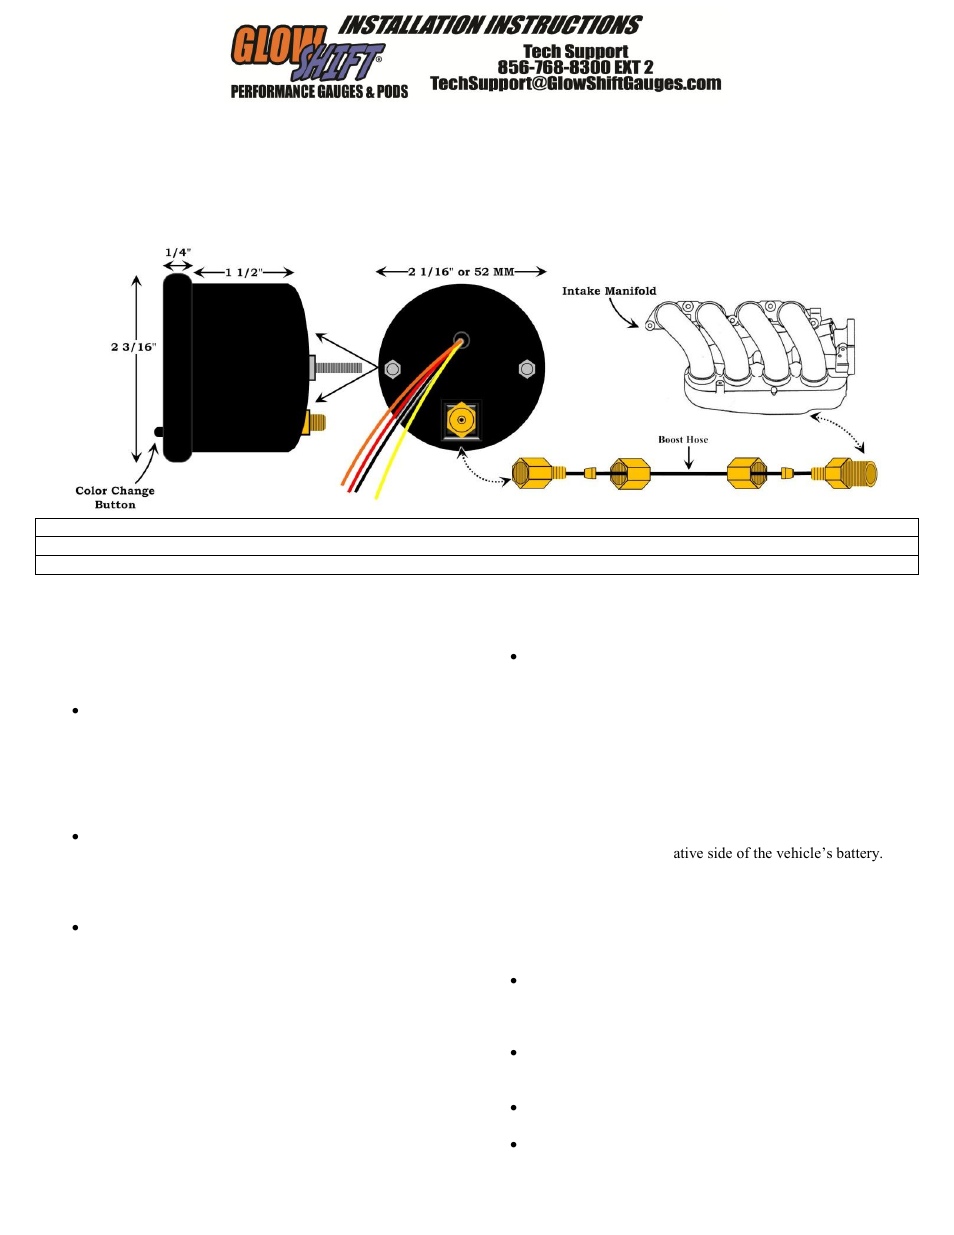 Wiring Diagram For Glowshift Boost Gauge - Wiring Diagram M2 on